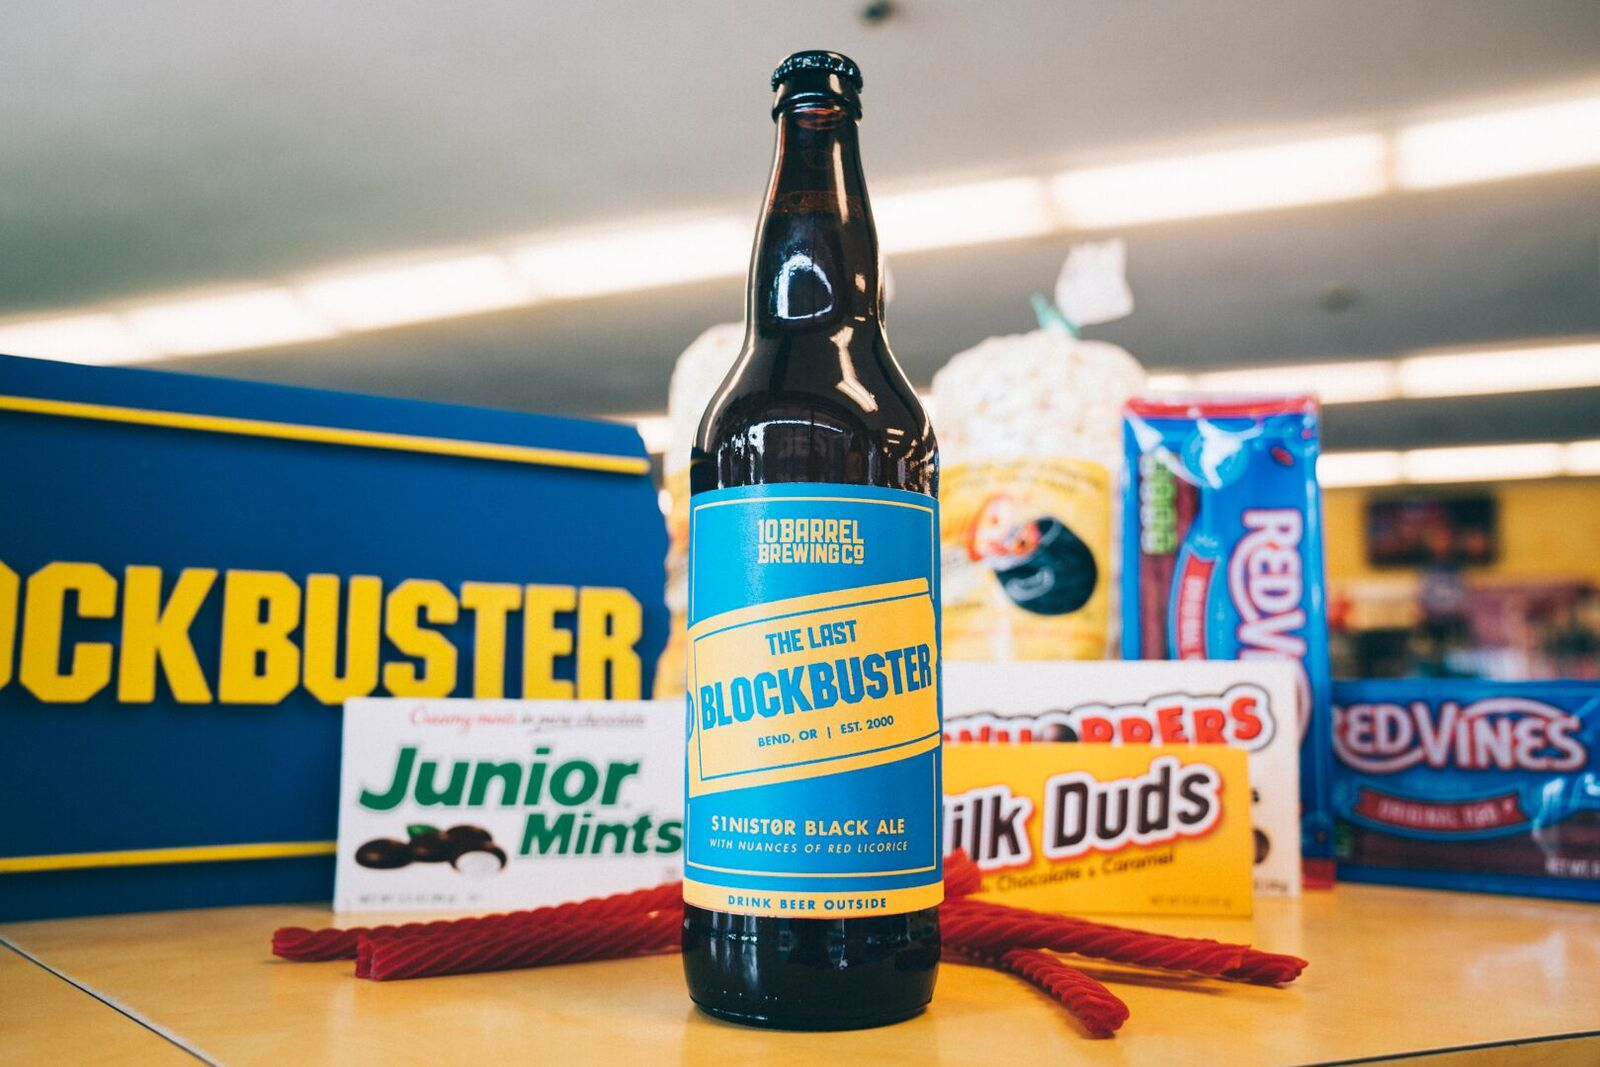 A Blockbuster-themed beer exists, because our thirst for '90s nostalgia is unquenchable